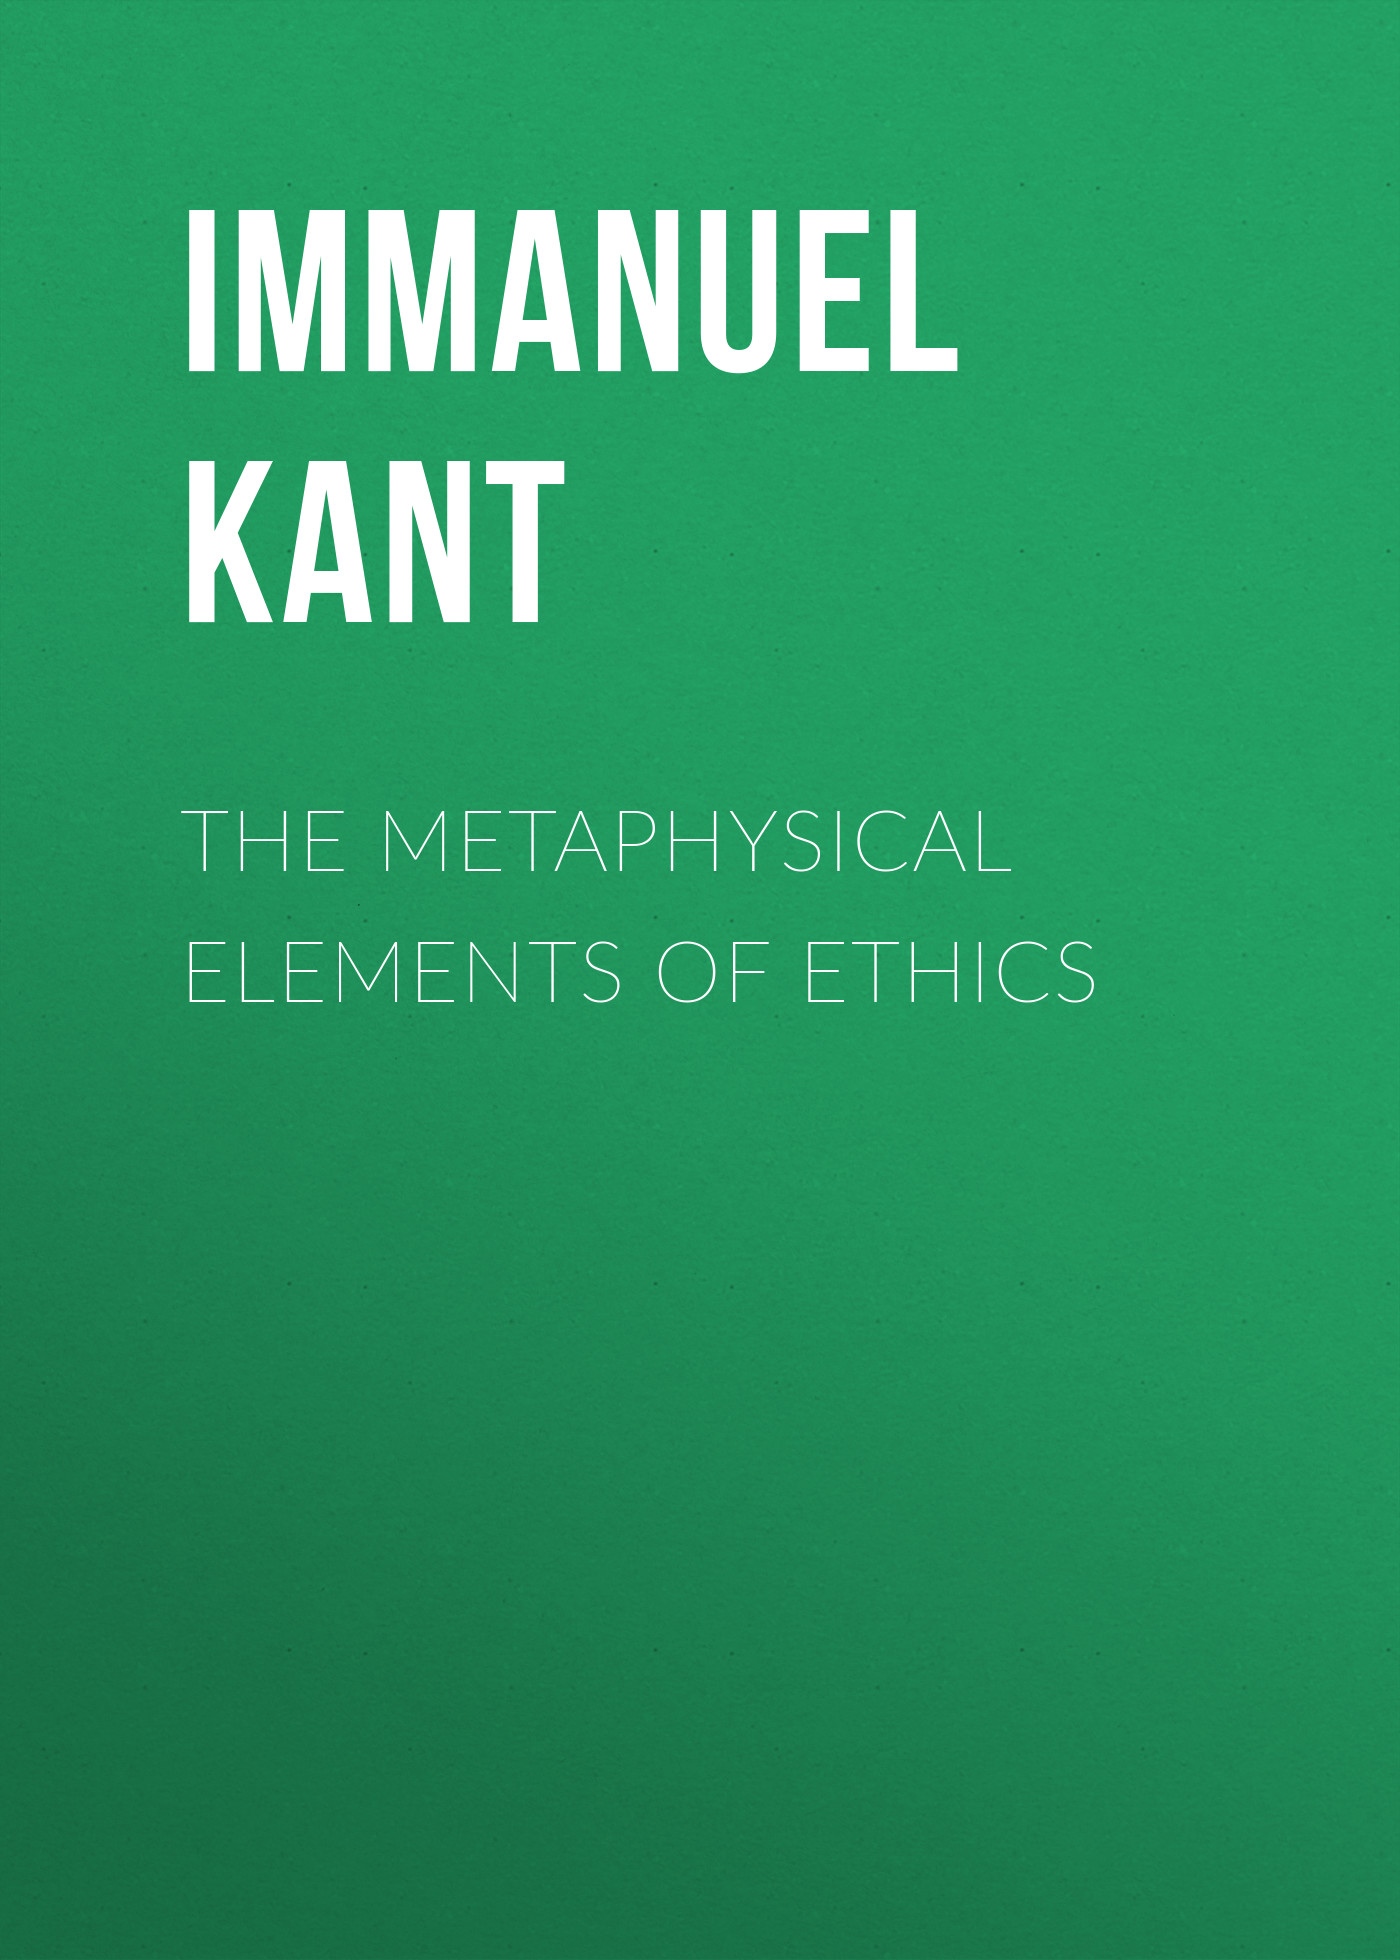 Immanuel Kant The Metaphysical Elements of Ethics luxury european brass bathroom accessories bath shower towel racks shelf towel bar soap dishes paper holder cloth hooks hardware page 8